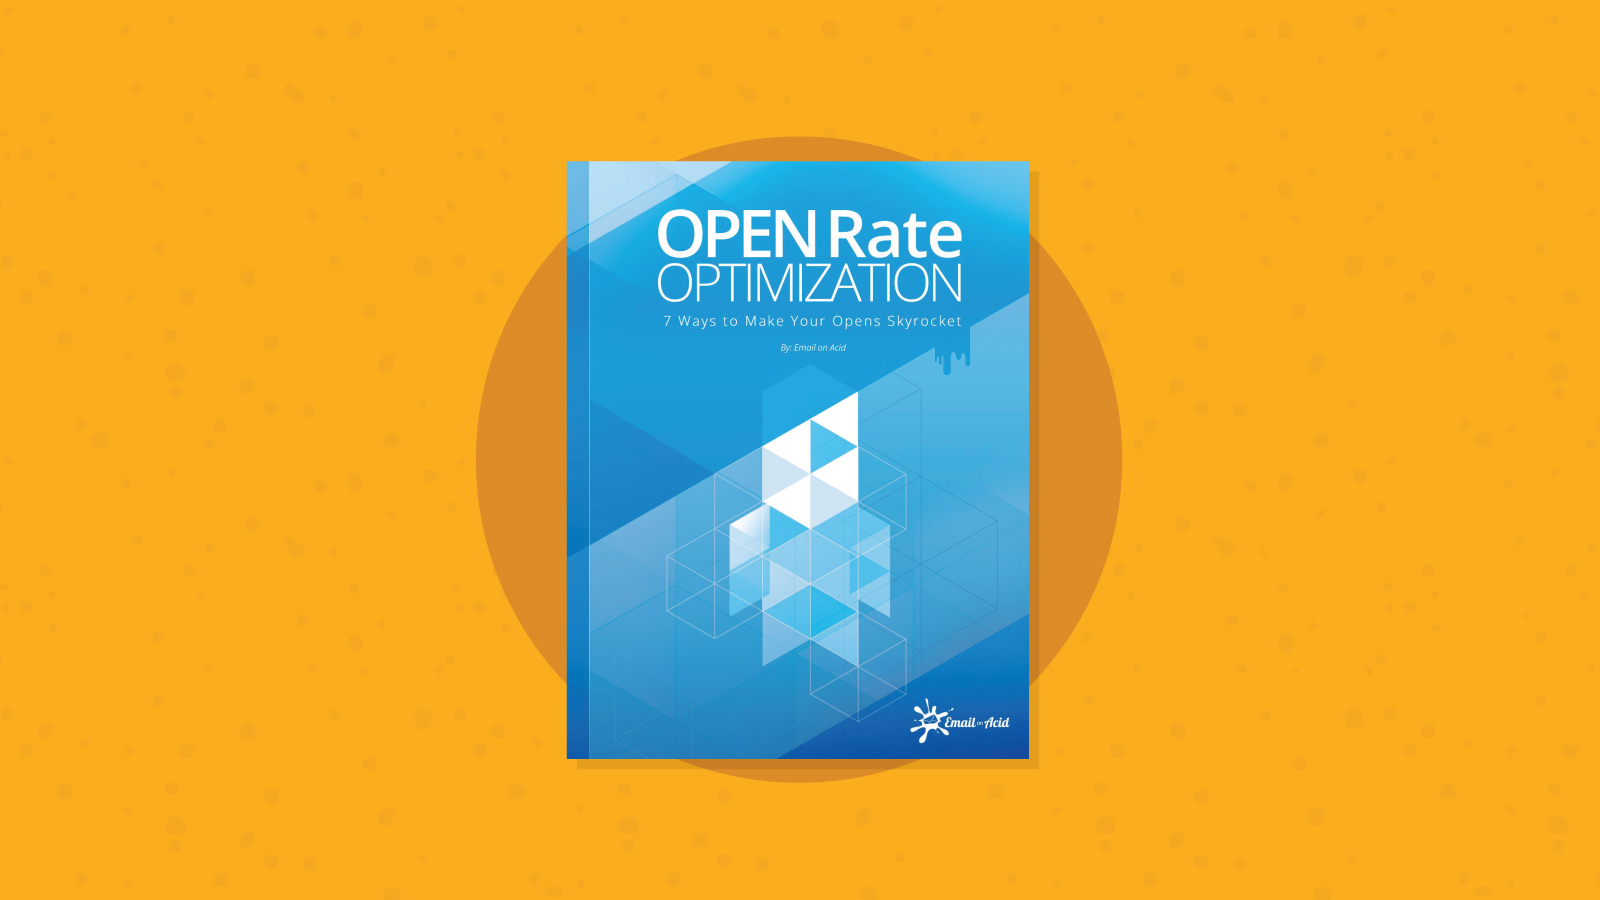 Open Rate Optimization Guide